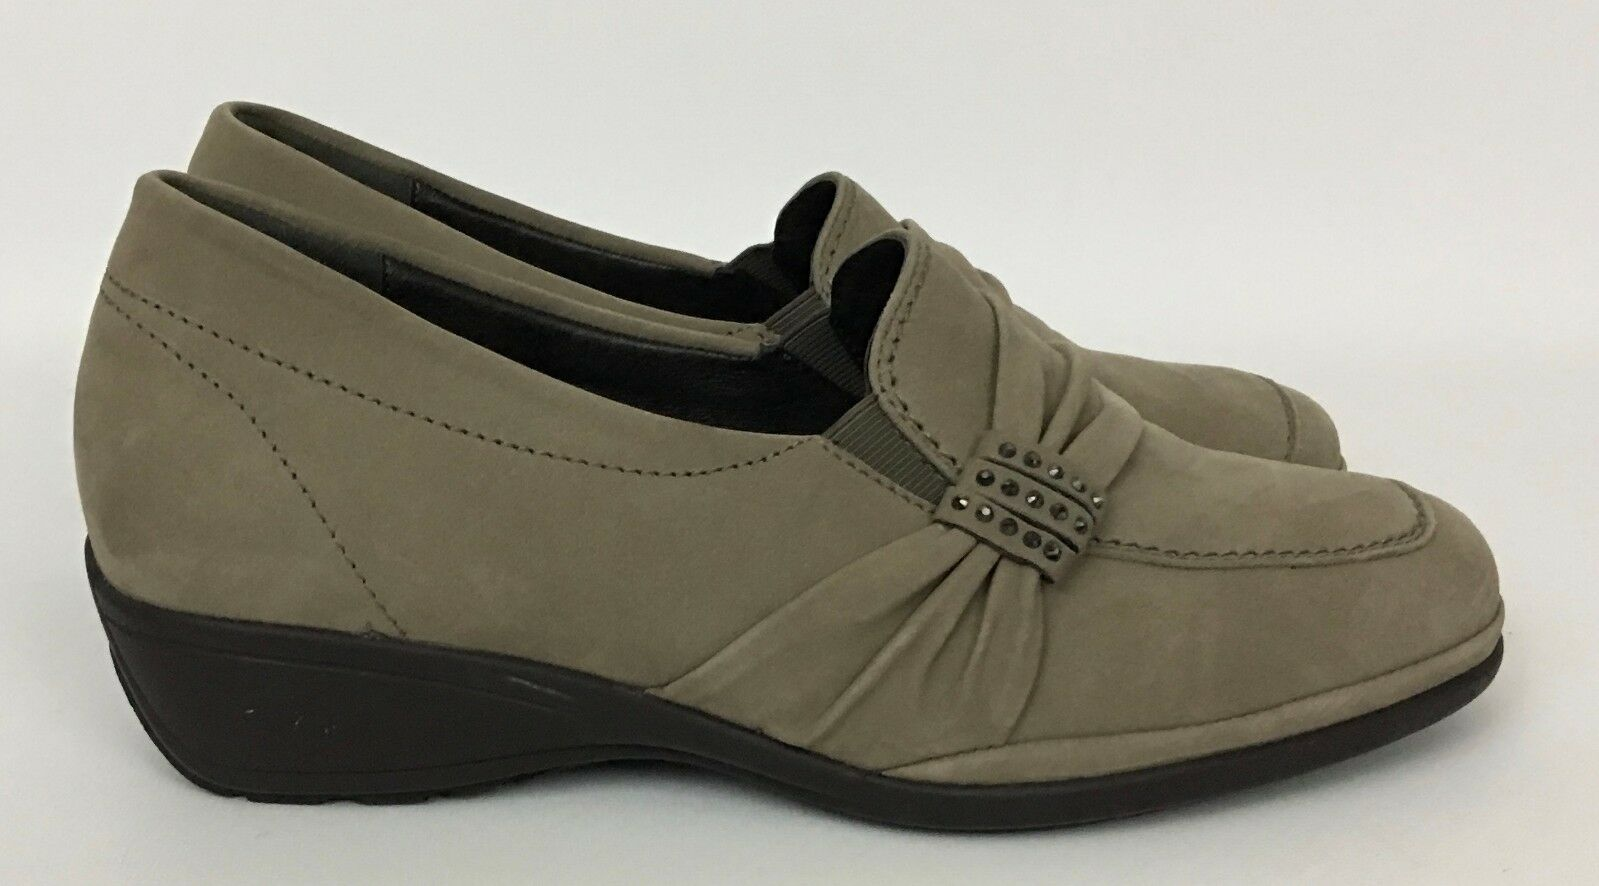 negozio outlet Hoeltzhaus Lindena Taupe Taupe Taupe Nubuck Leather Loafers scarpe Dimensione 4 K US 6 6.5  acquista marca